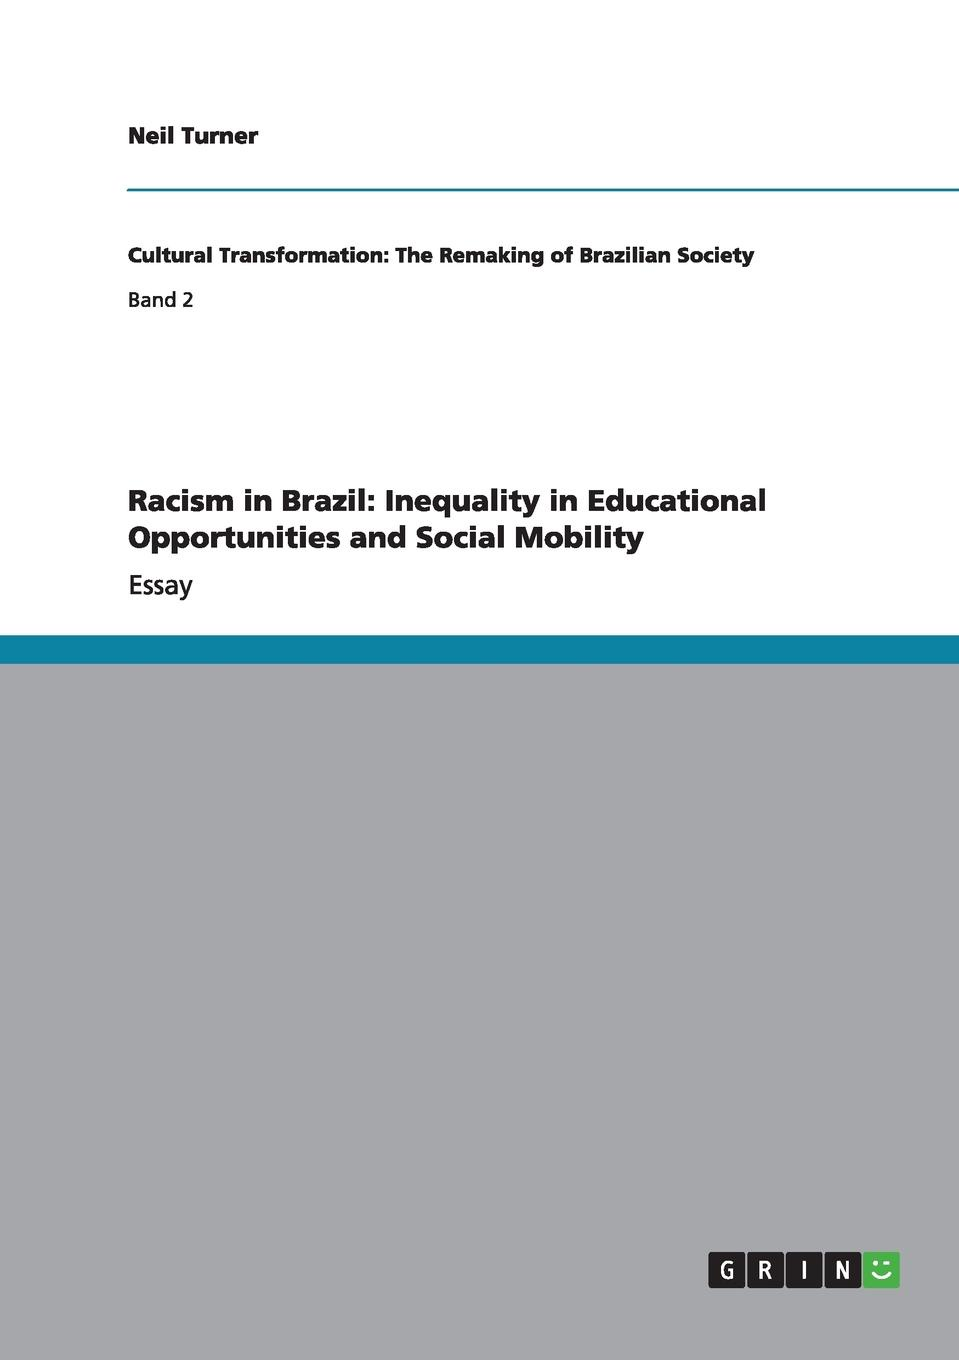 Neil Turner Racism in Brazil. Inequality in Educational Opportunities and Social Mobility how public policy impacts racial inequality